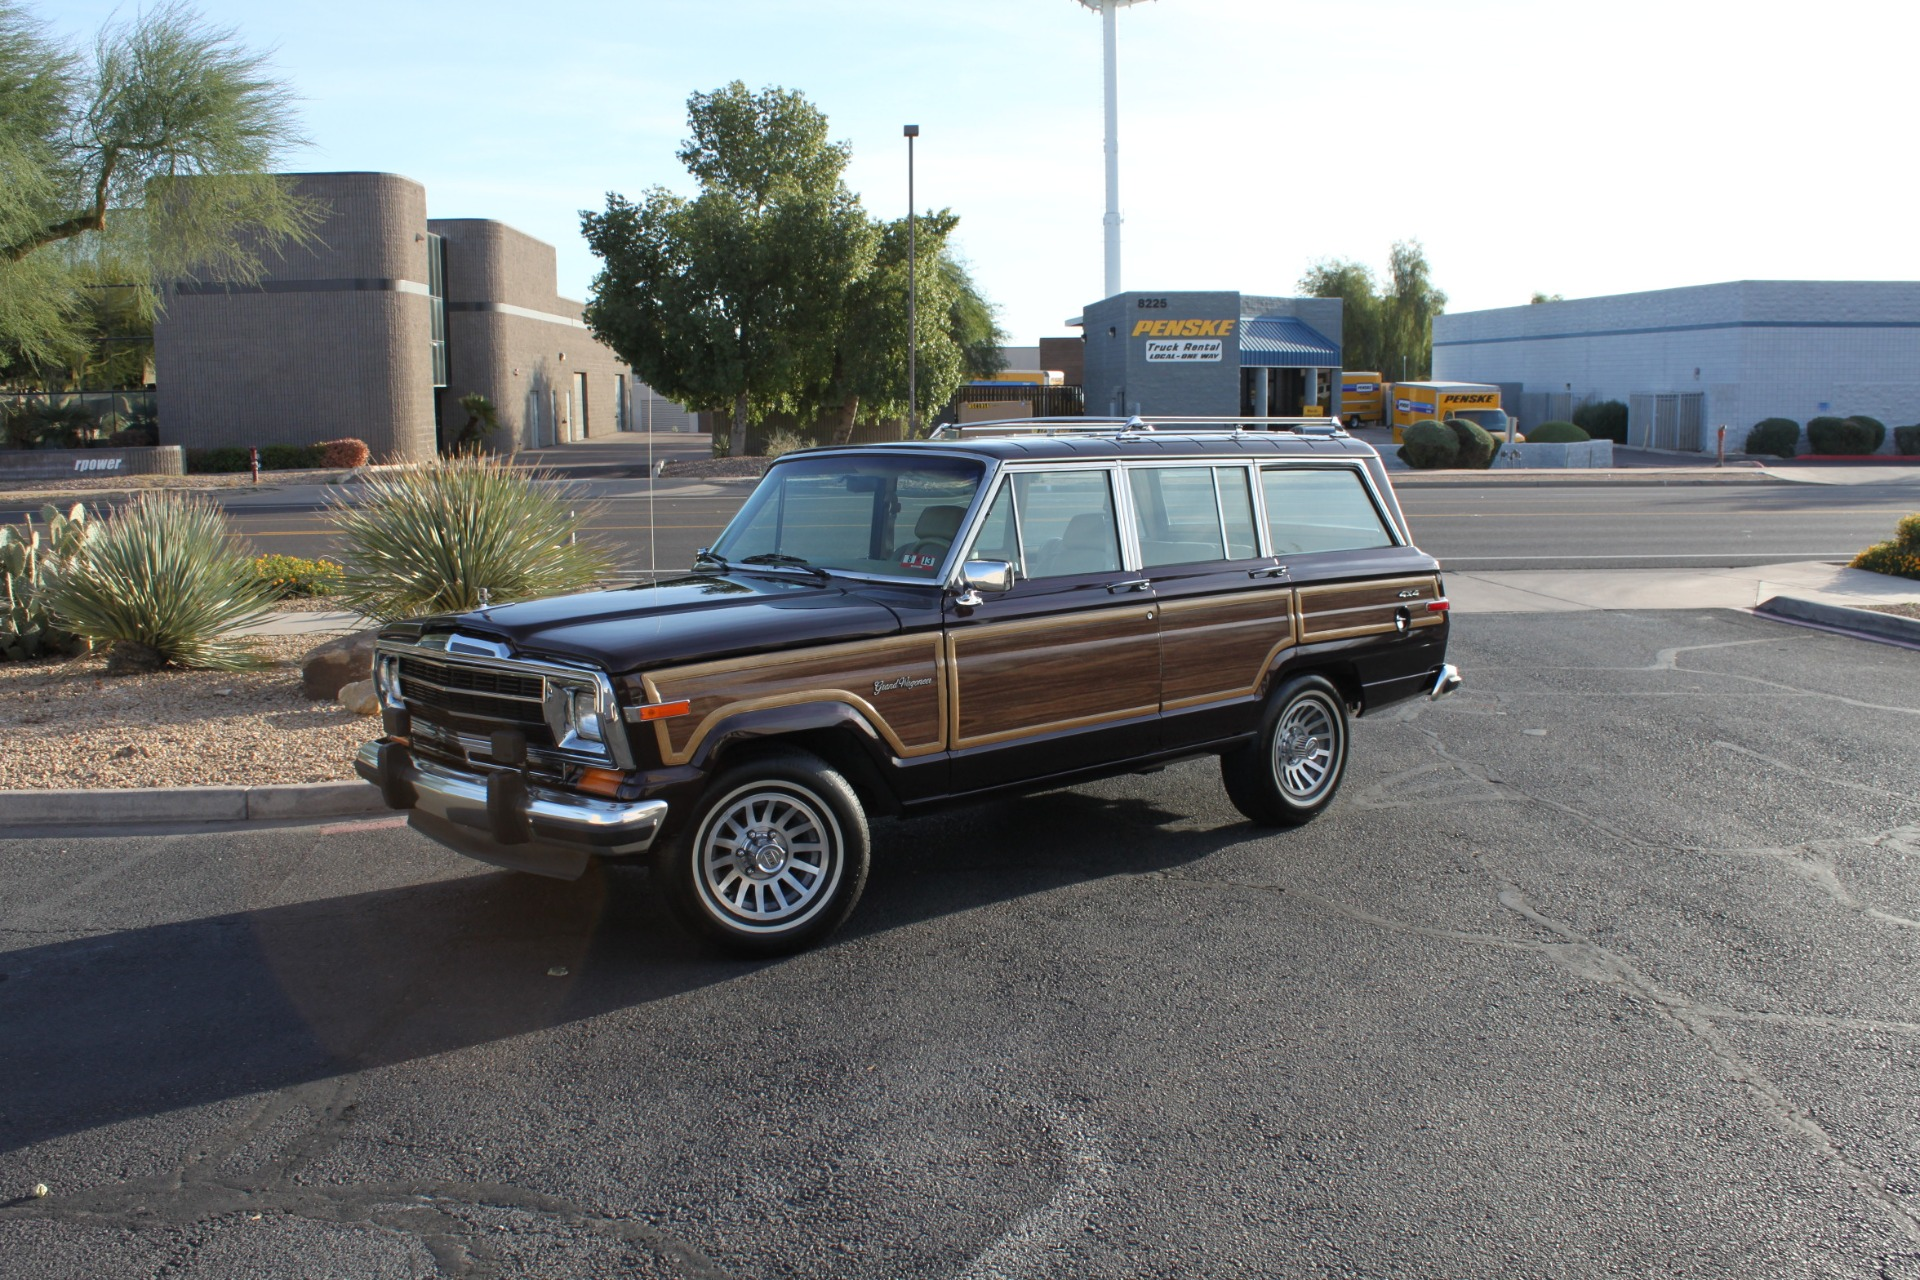 Used-1990-Jeep-Grand-Wagoneer-4X4-Audi